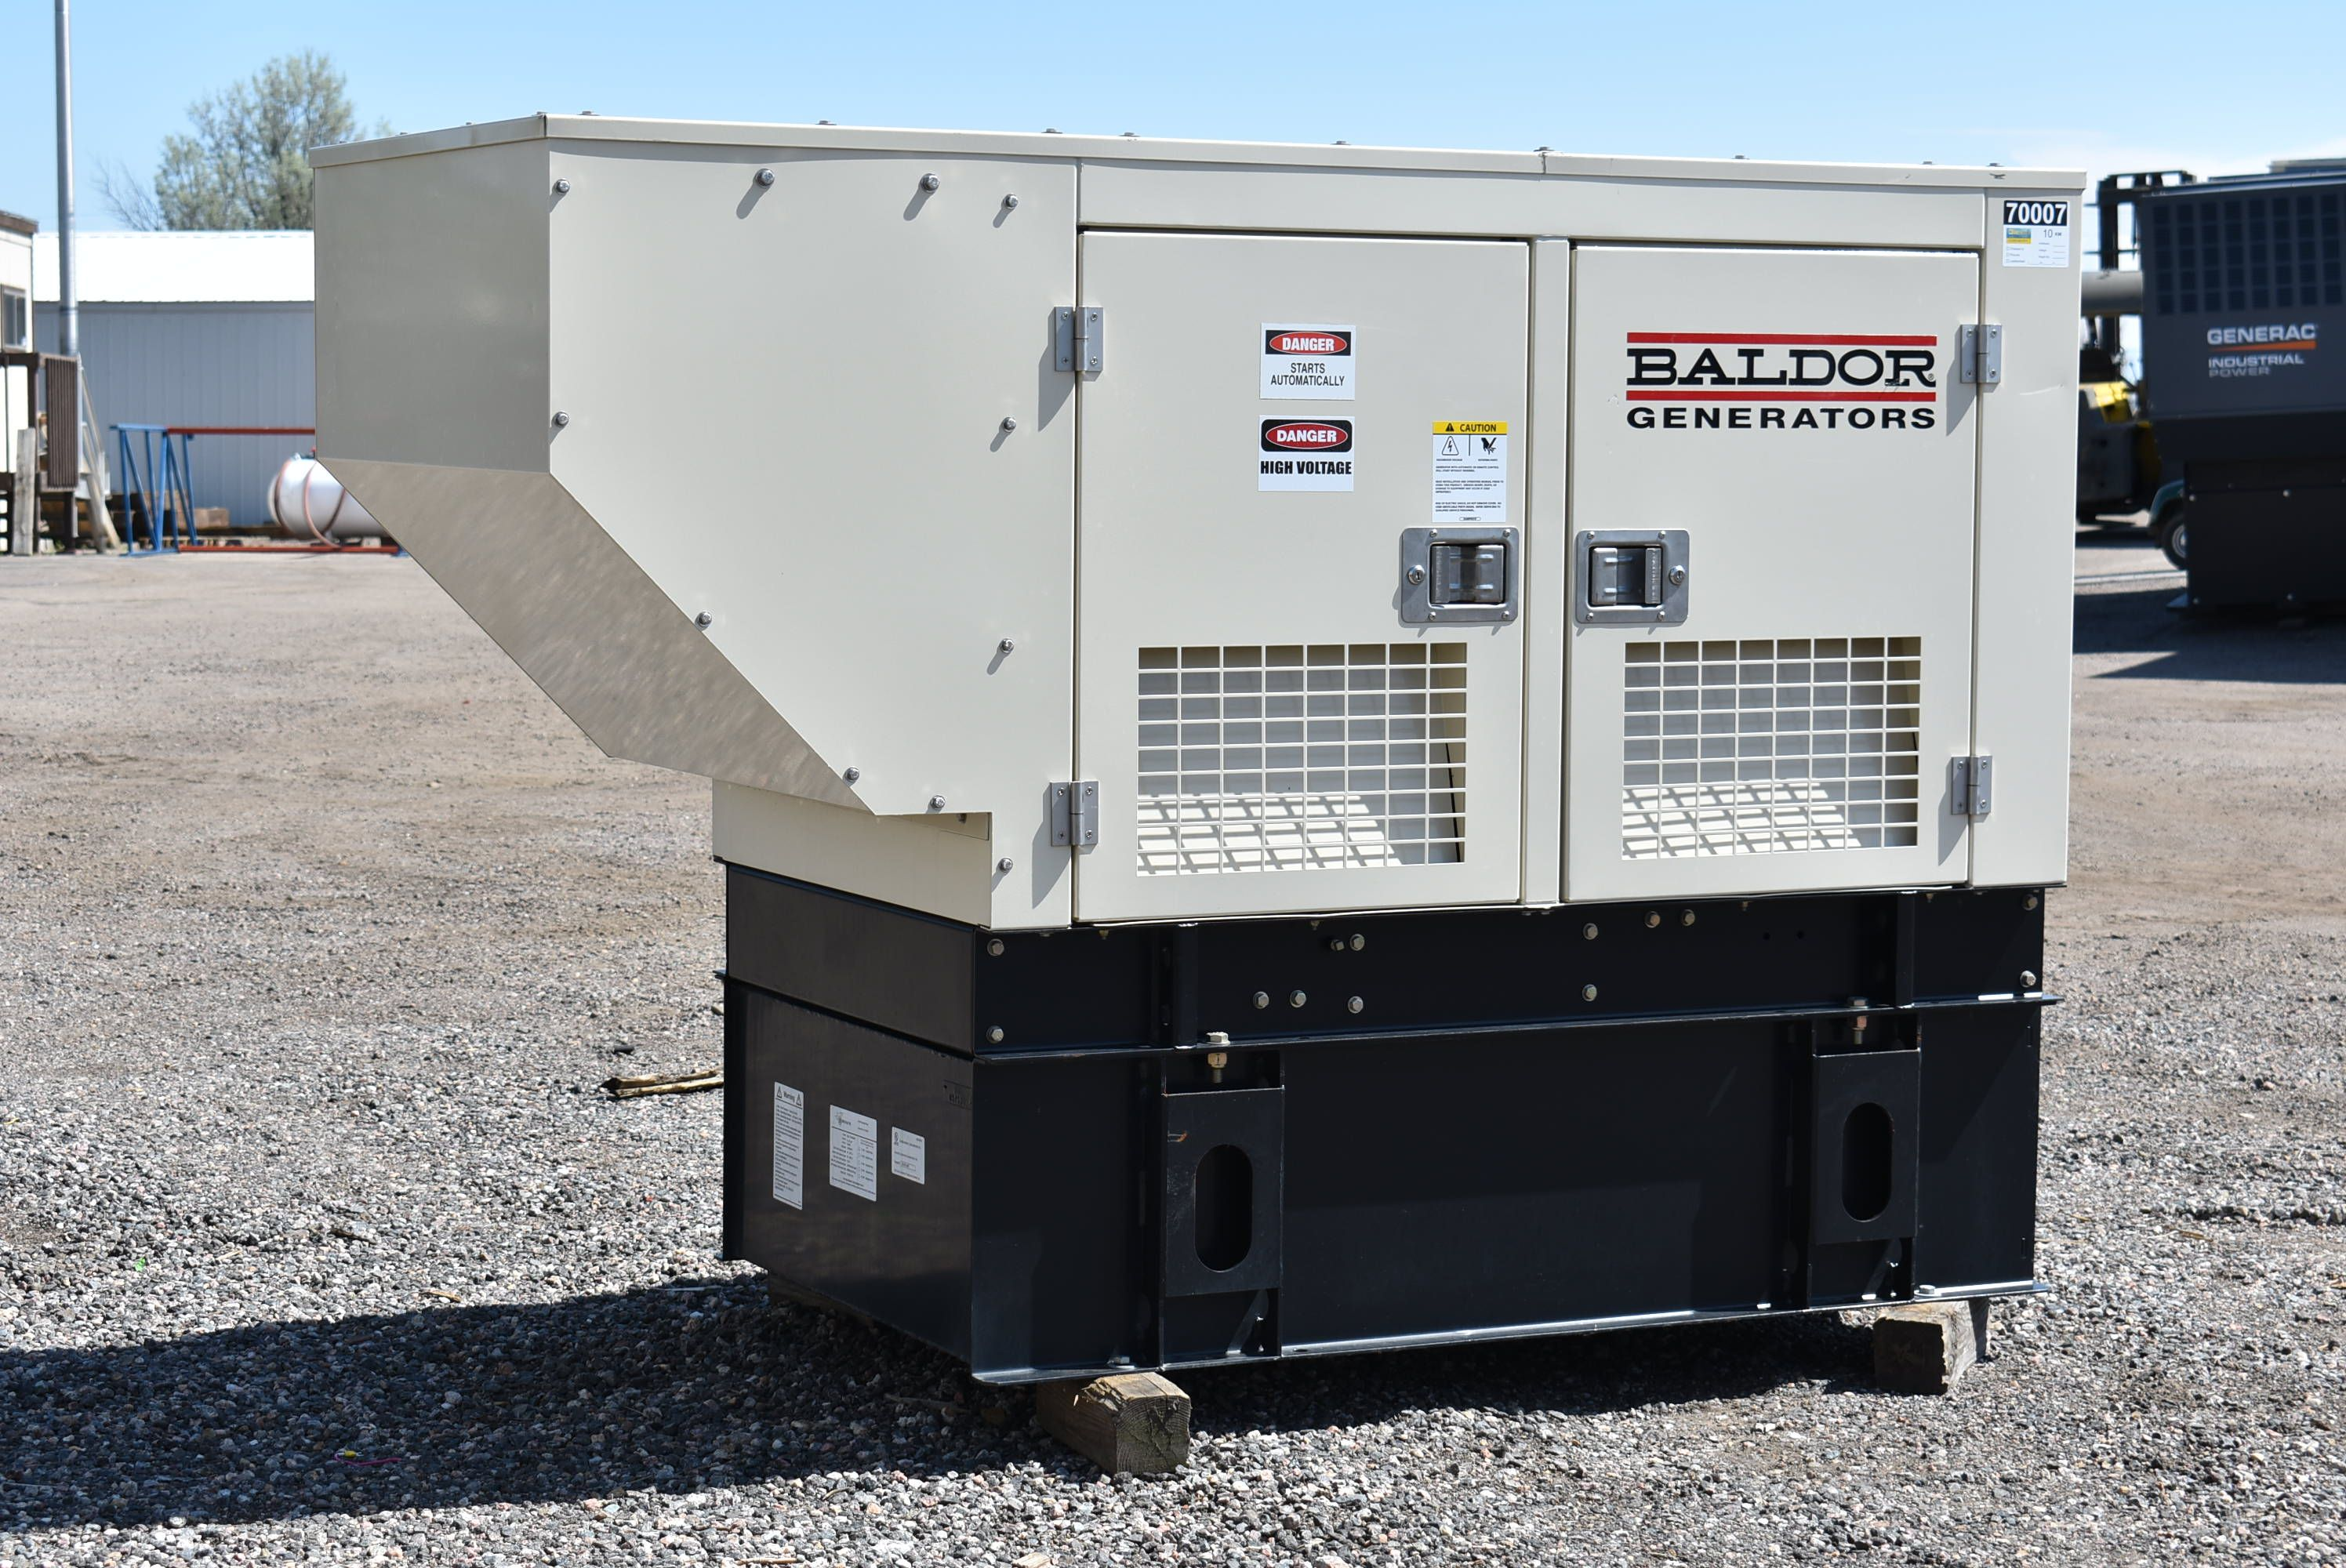 For Sale Baldor 10 Kw Diesel Generator Set Unit 70007 Model Idlc10 3mu Year 2011 41 8 Hours Run 240 Volt 3 Phase Mi Generation Diesel Generators Dry Pack